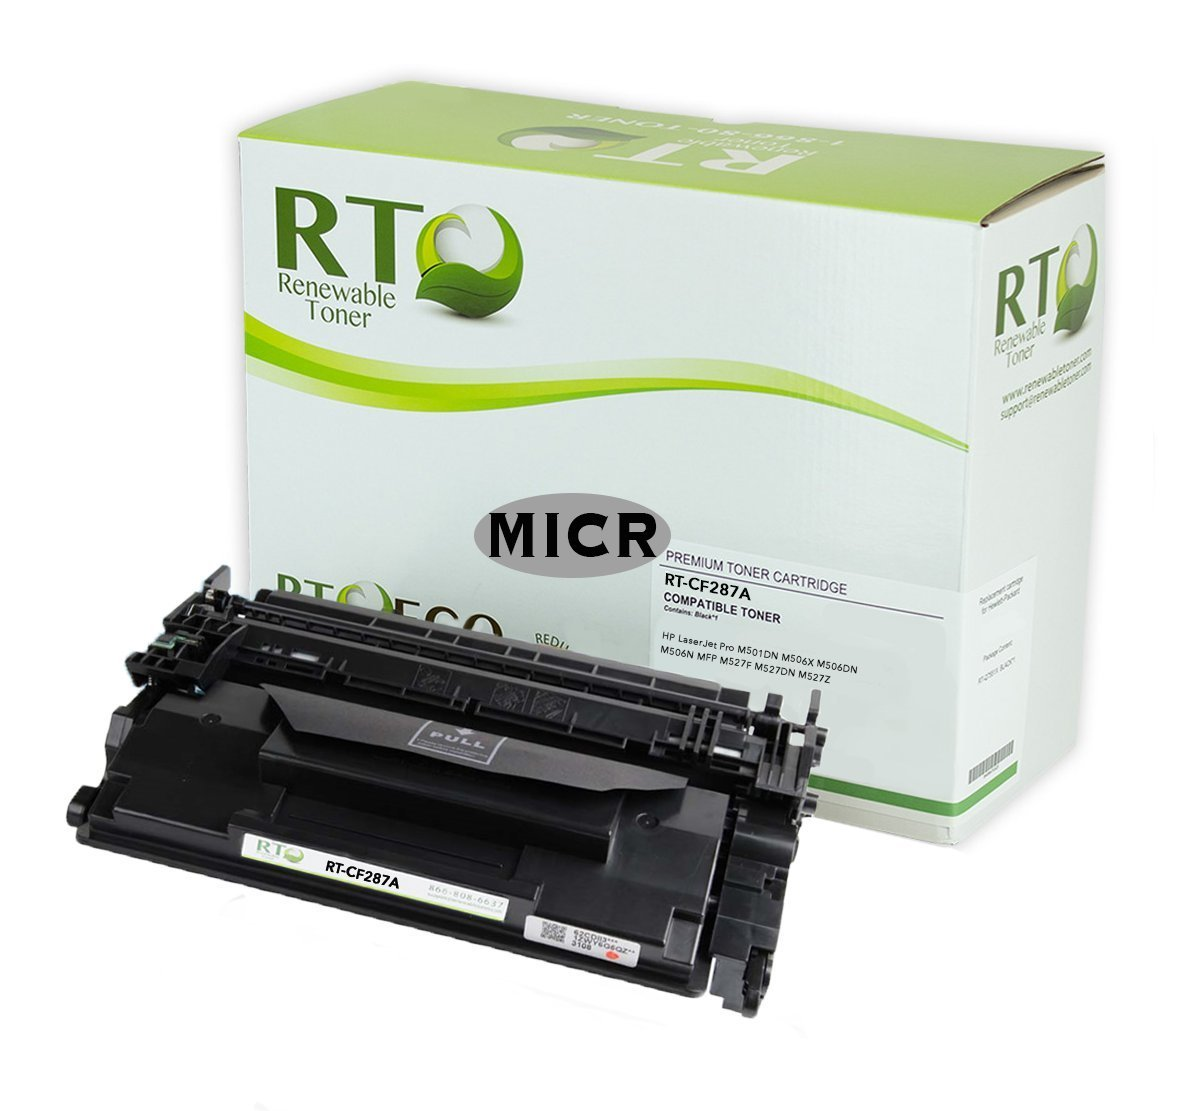 Renewable Toner MICR Toner 18k Yield Compatible for HP M506